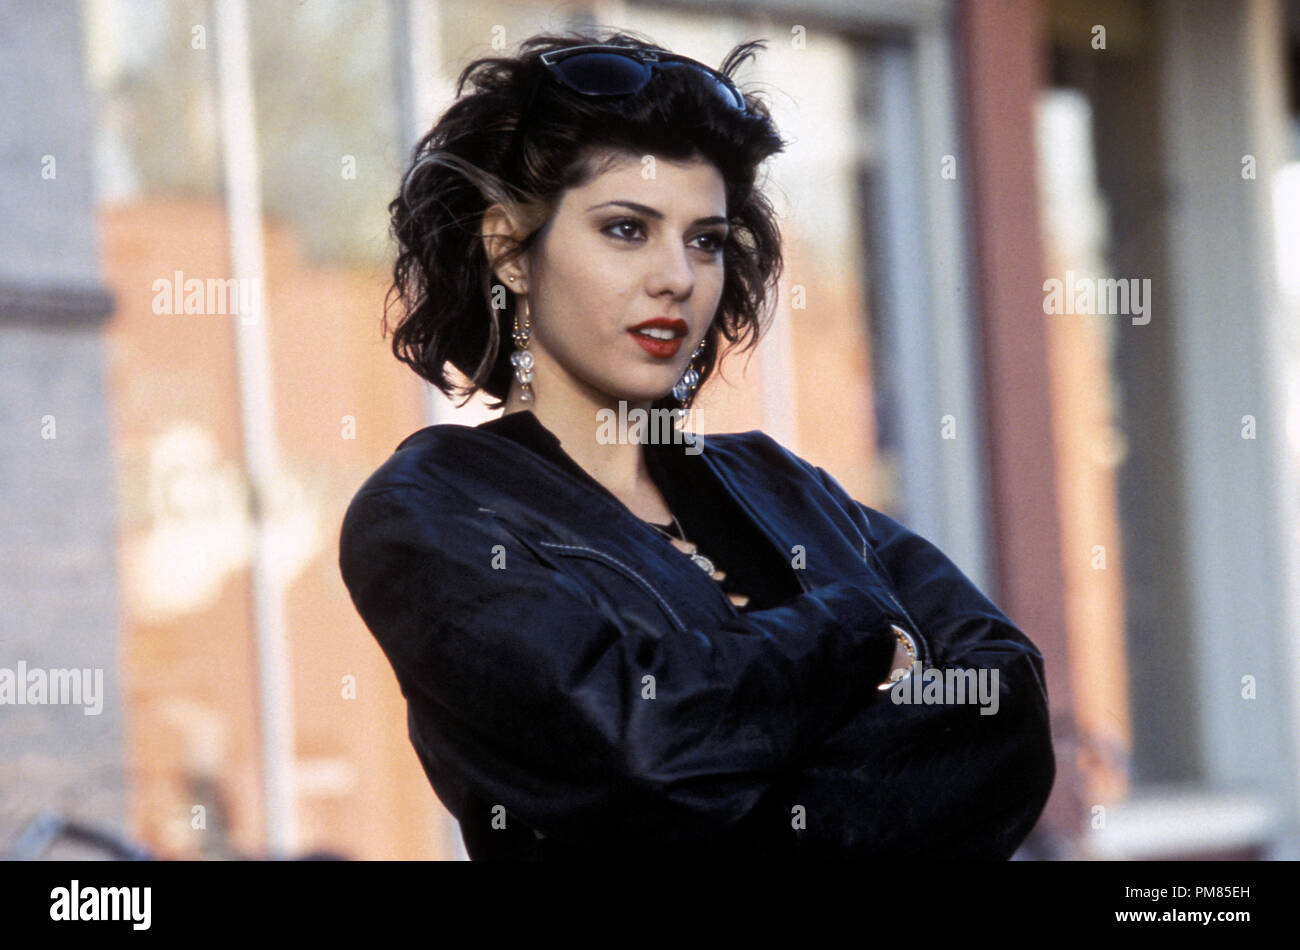 Film still or Publicity still from 'My Cousin Vinny' Marisa Tomei © 1992 20th Century Fox Photo Credit: Ben Glass All Rights Reserved   File Reference # 31487_163THA  For Editorial Use Only - Stock Image